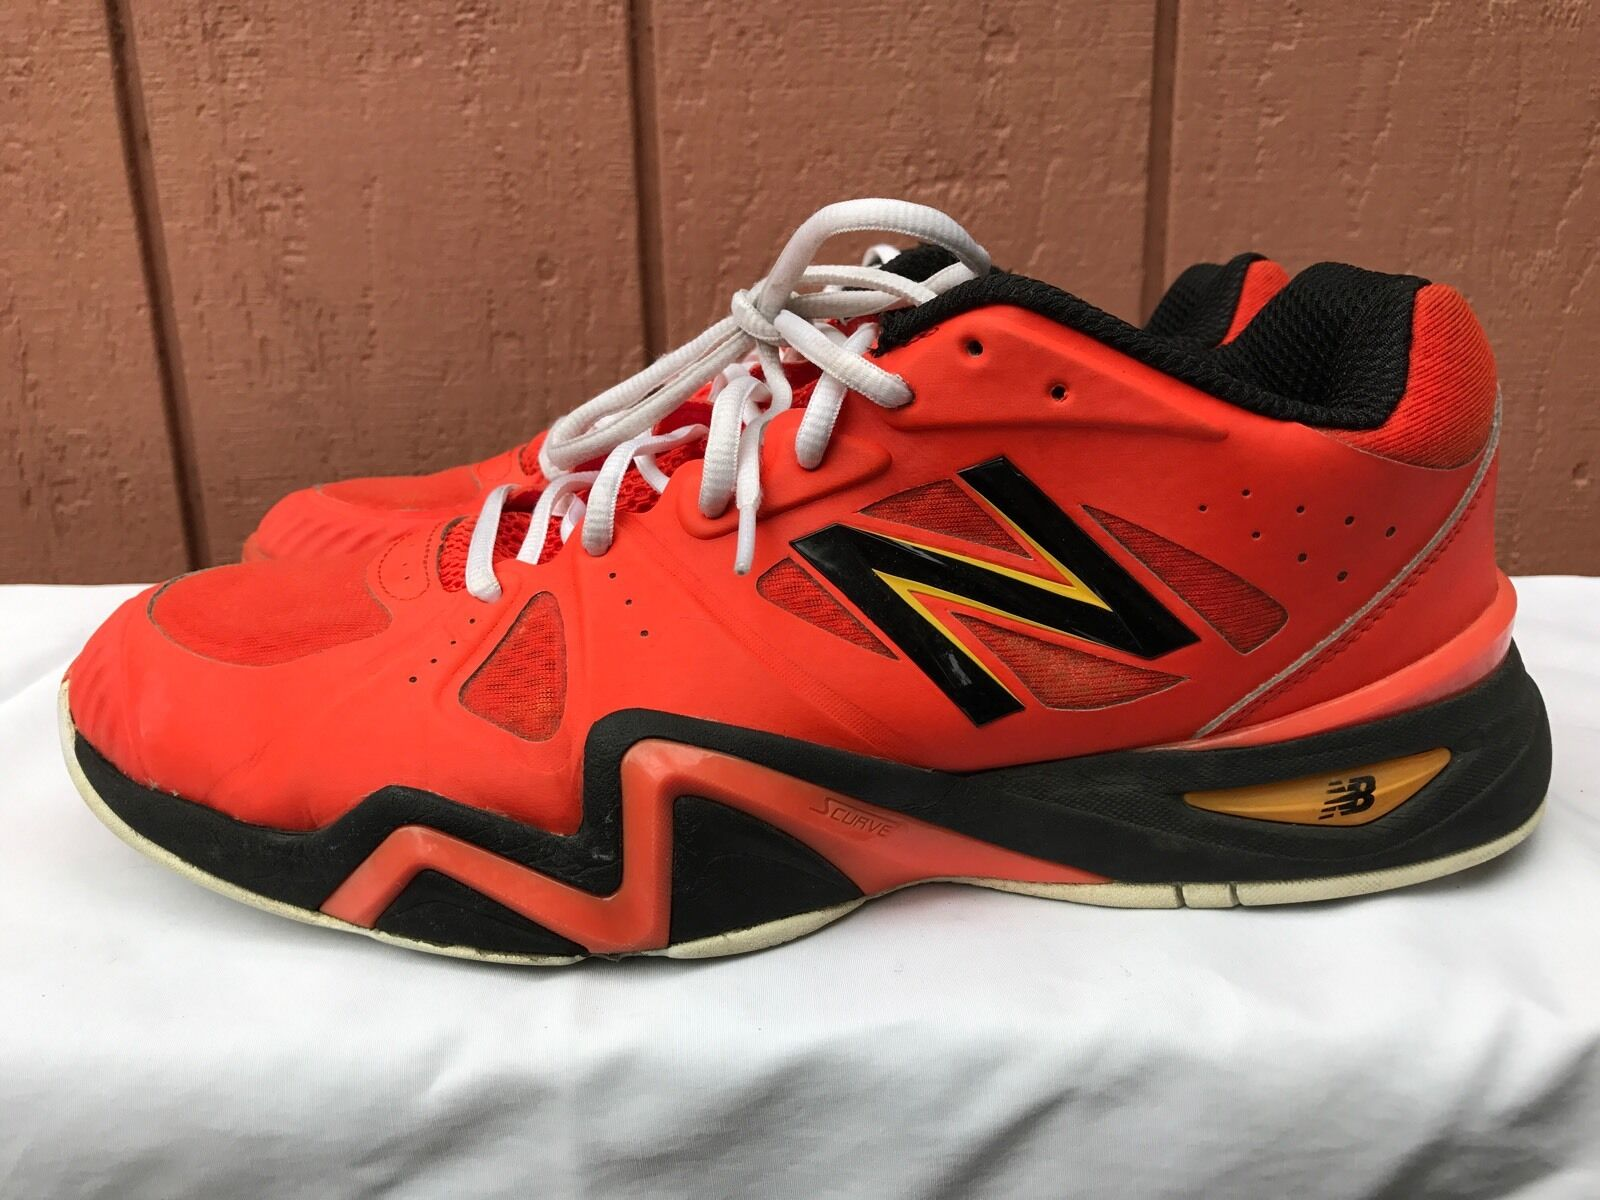 New Balance 1296 Mens US 10.5 Round Toe Synthetic Tennis shoes